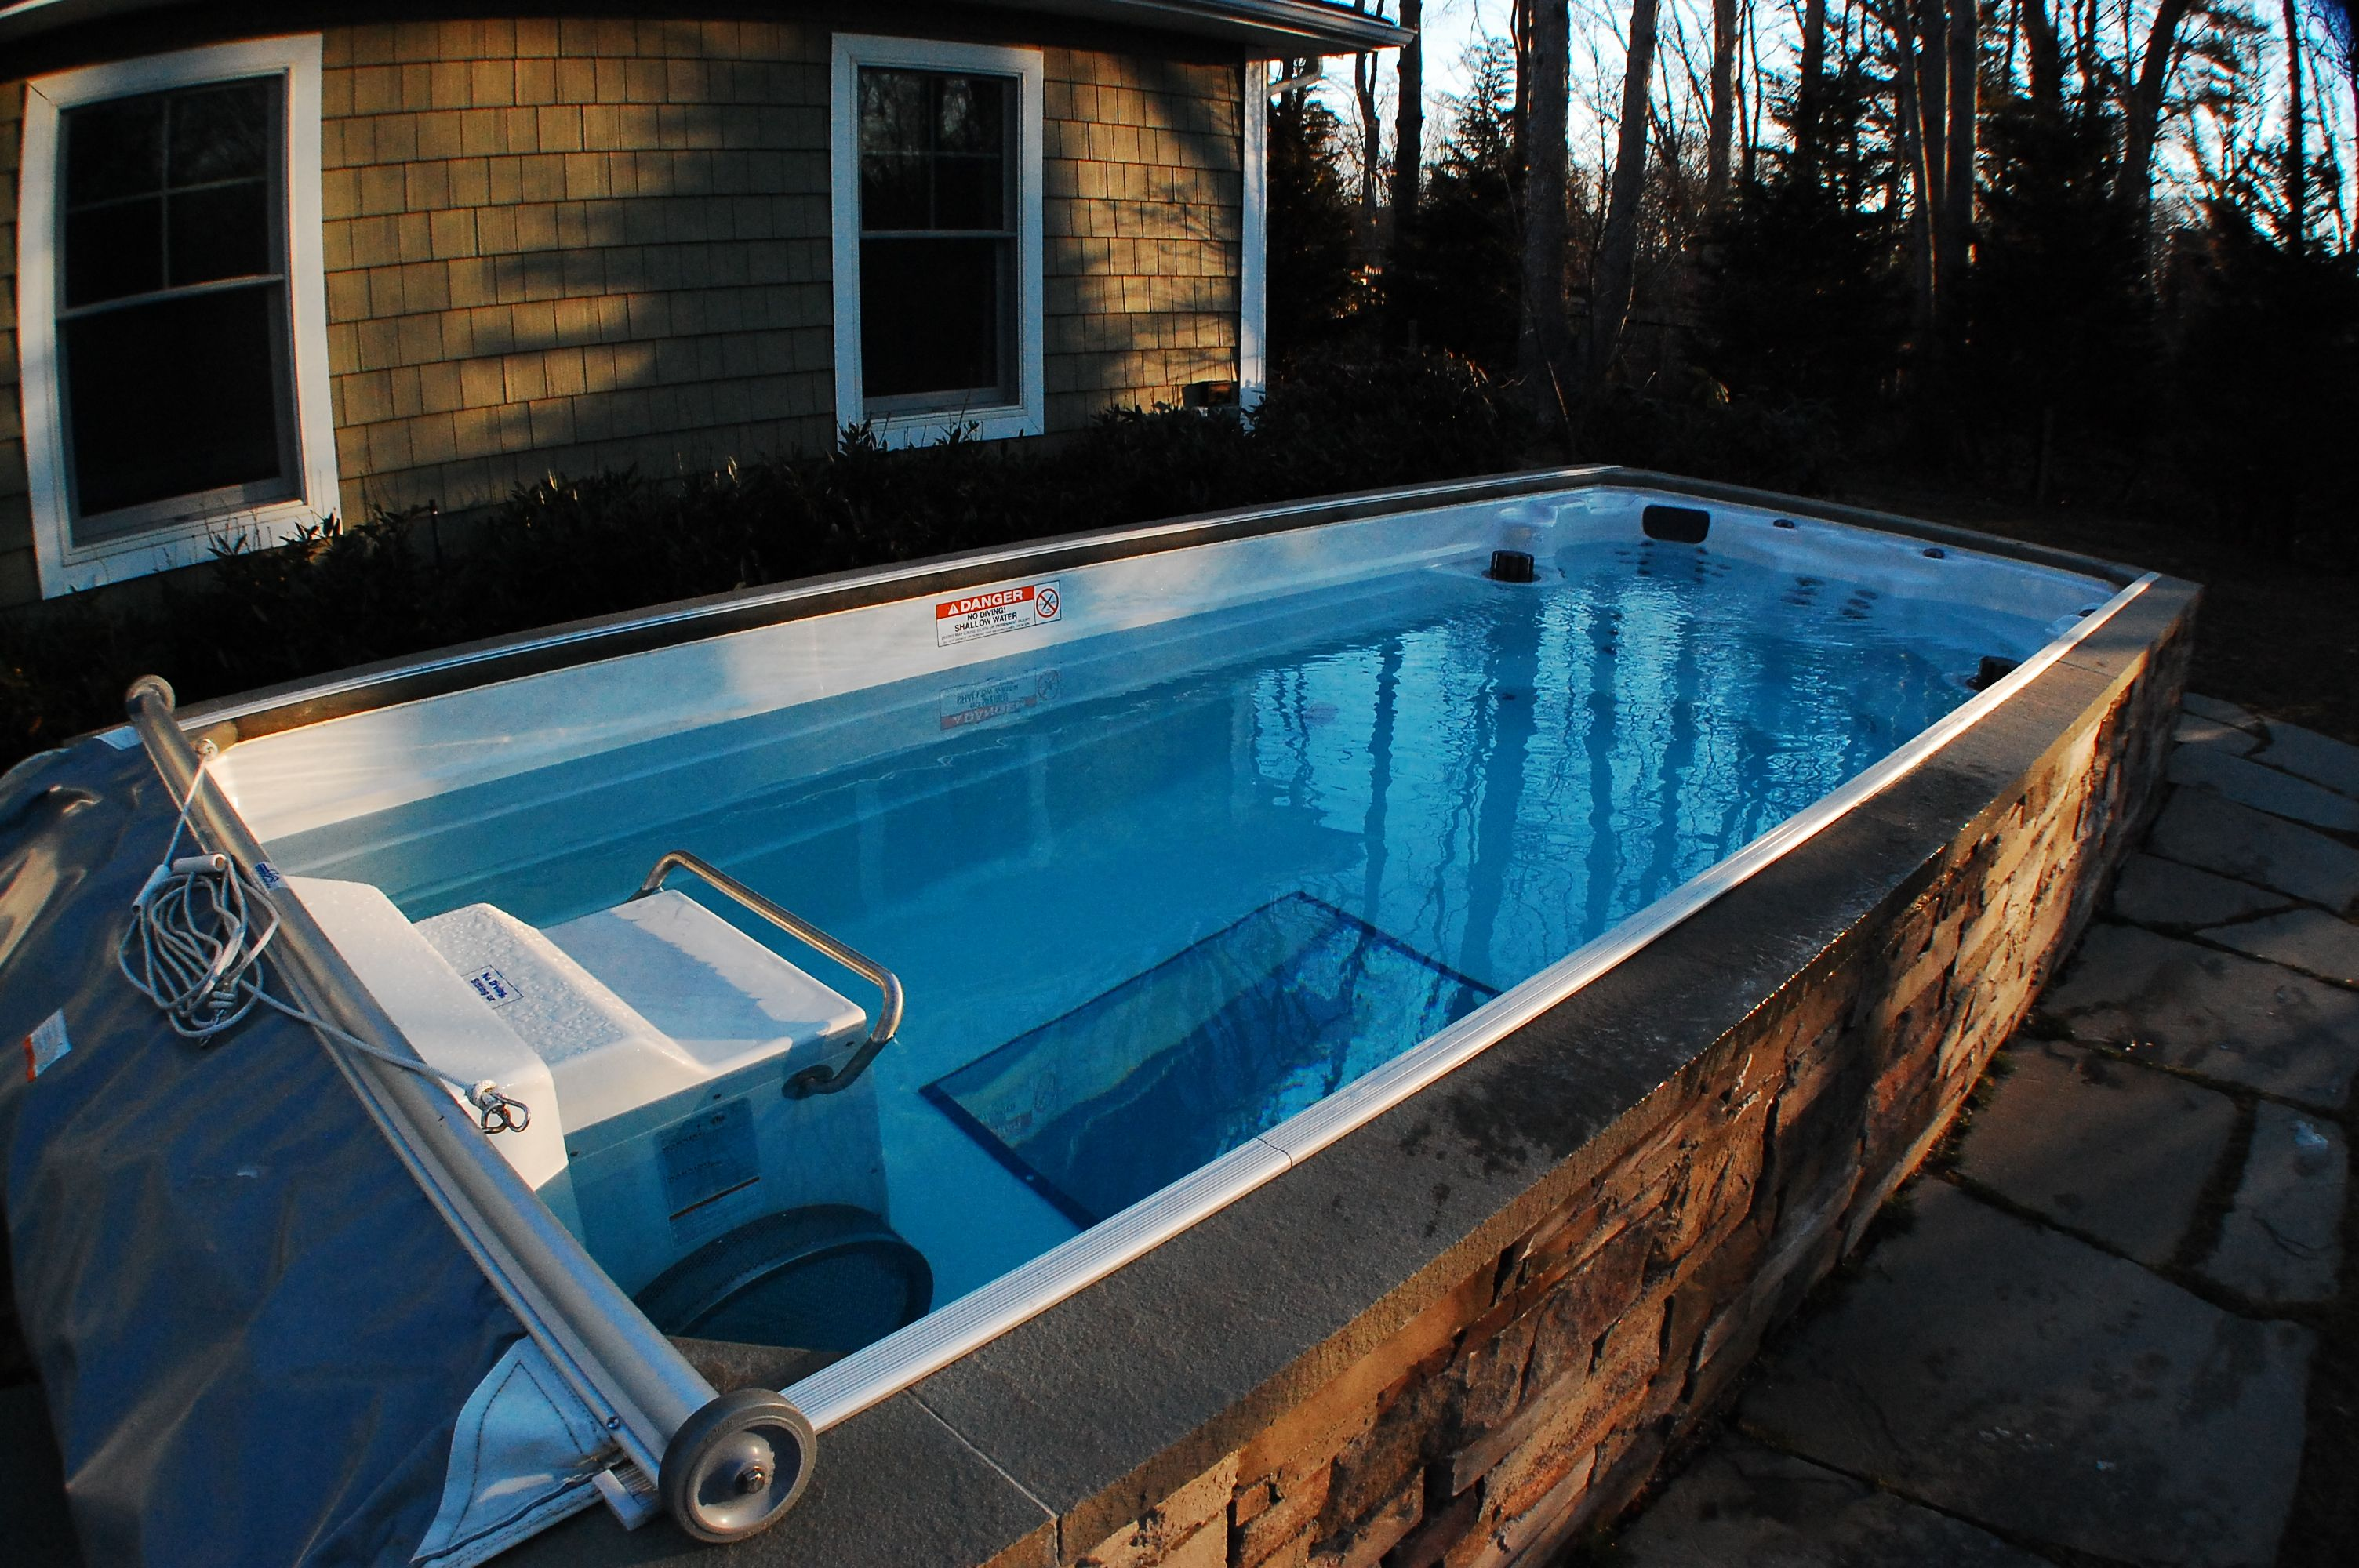 The 17 Endless Pool Swim Spa in this backyard is a great escape